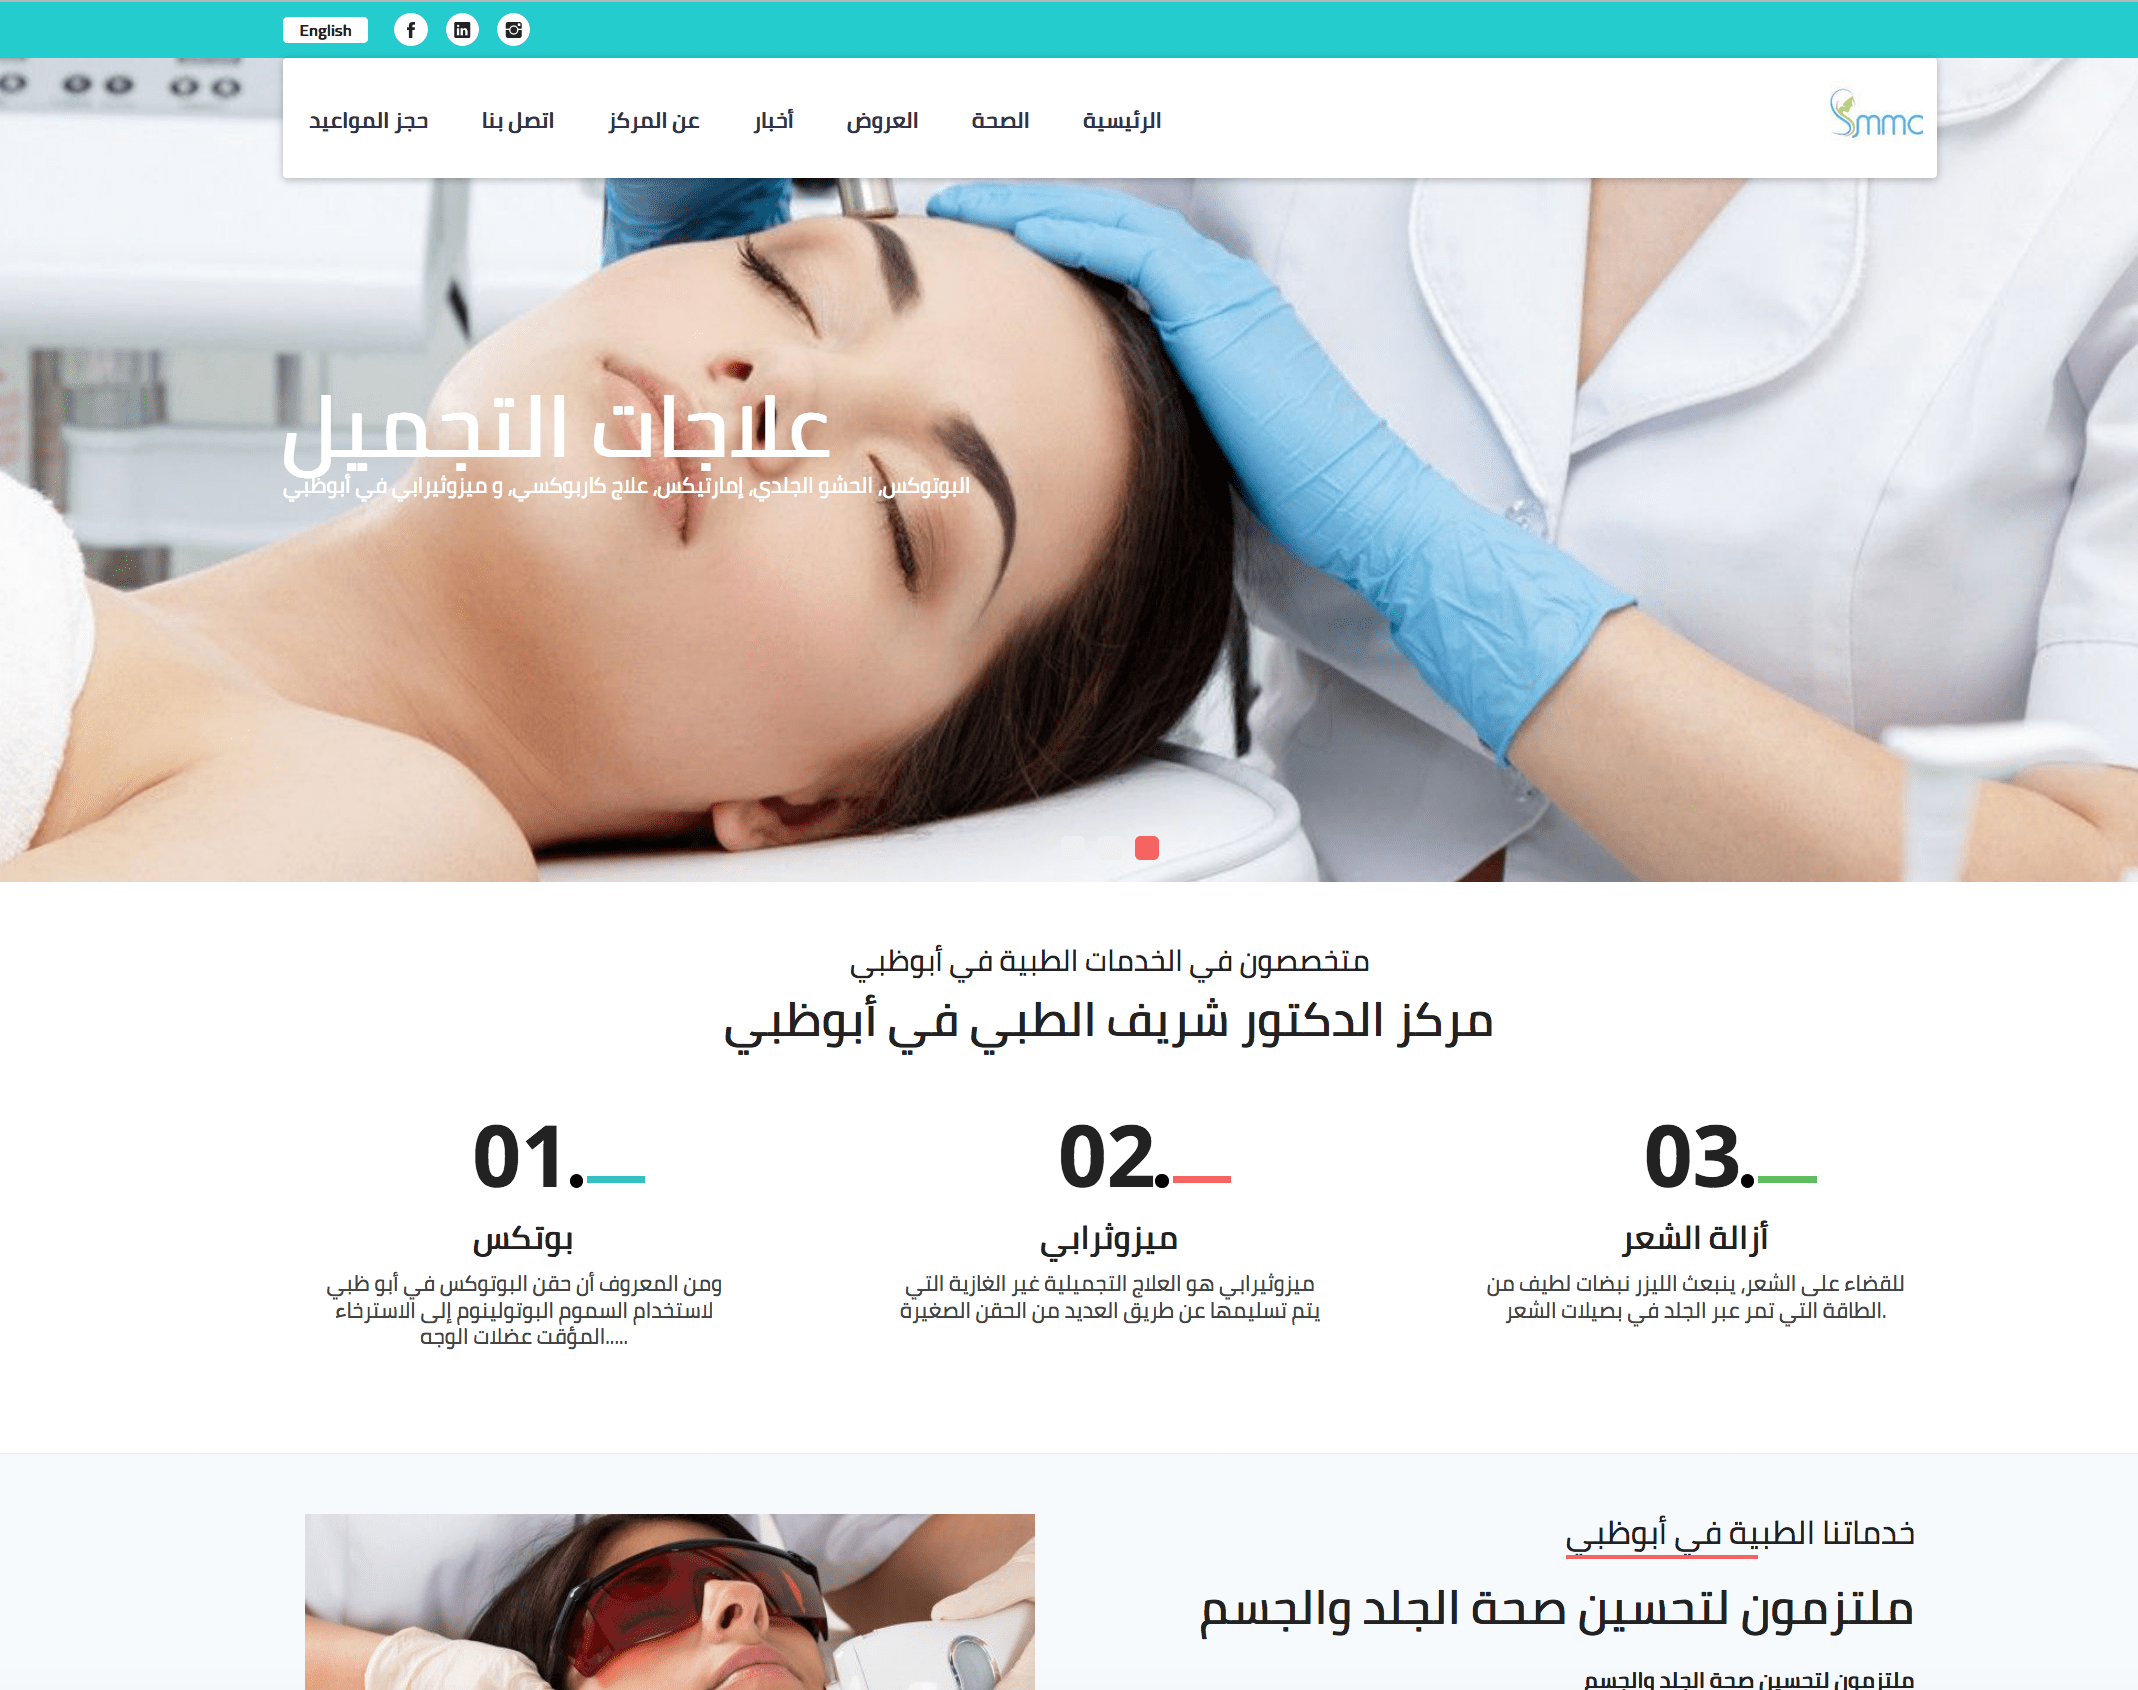 Build Arabic and Right-to-left RTL Websites